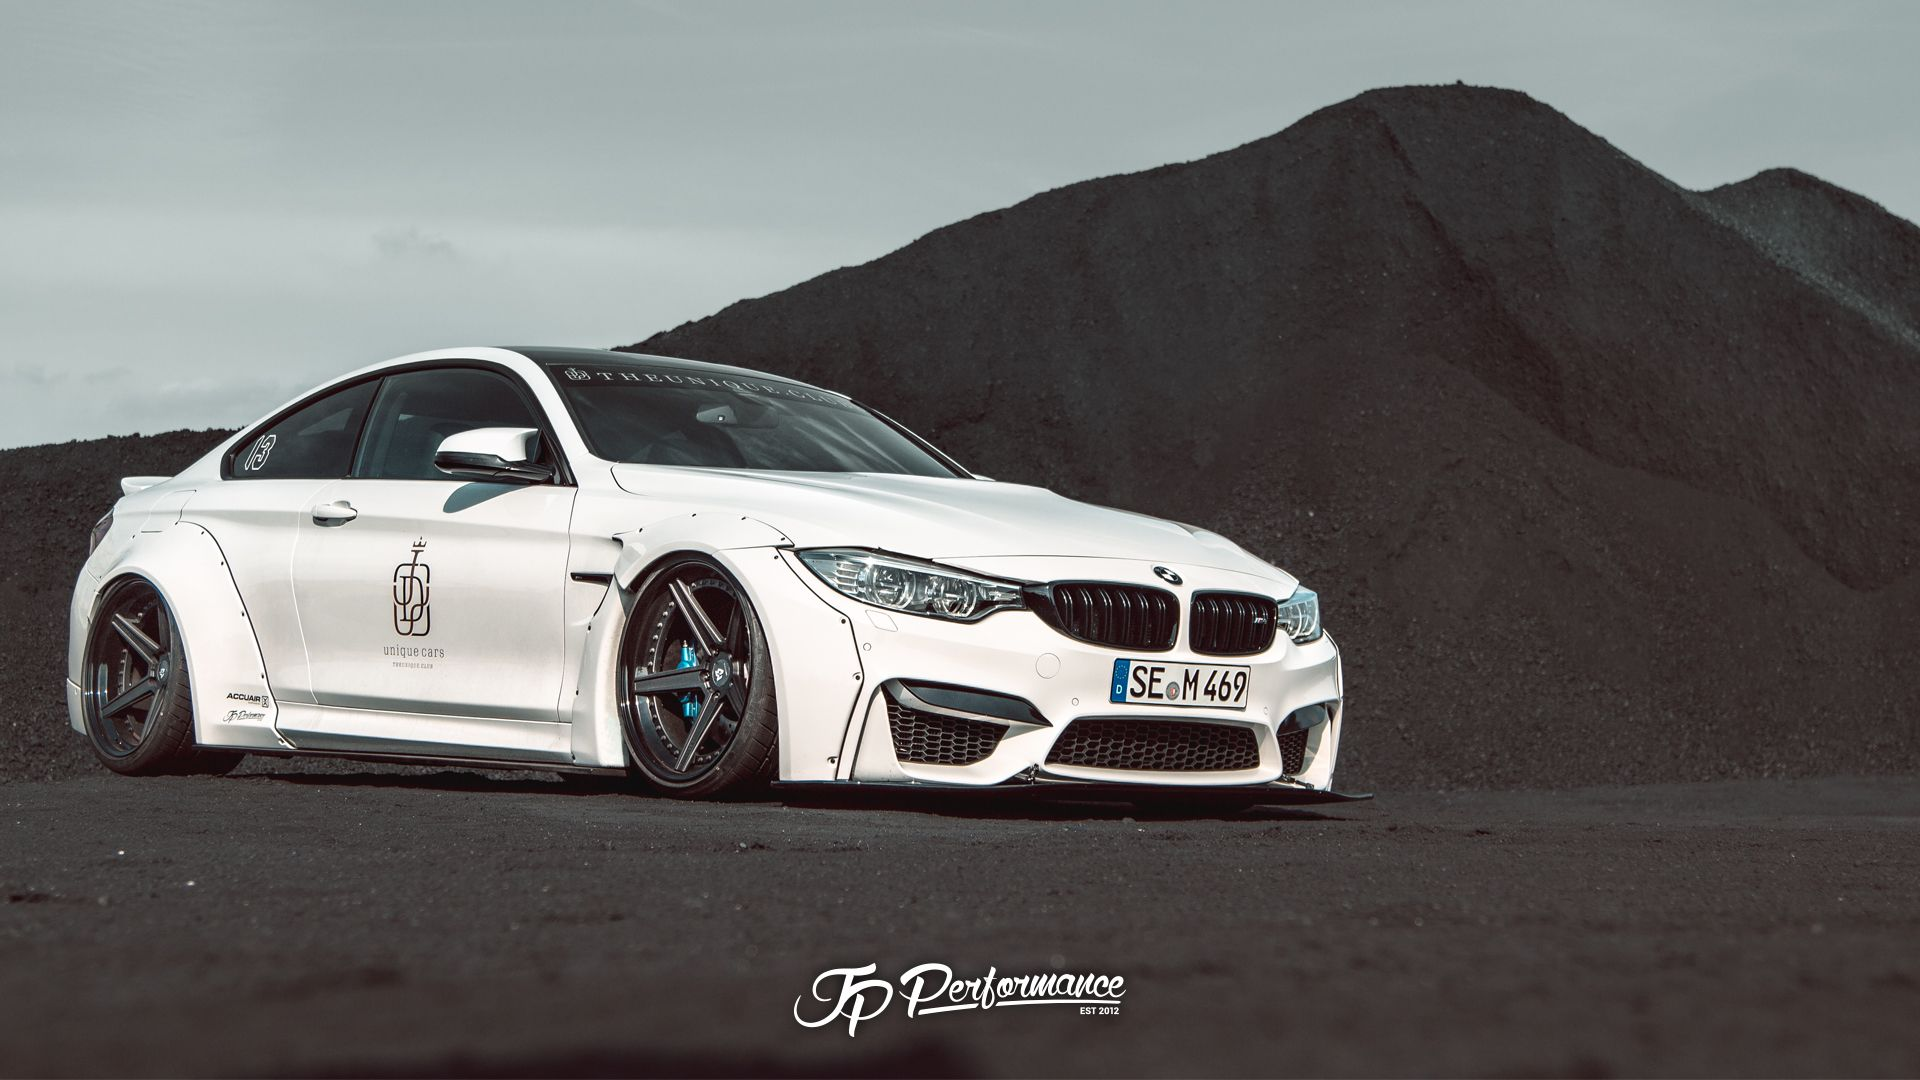 1080p M4 Liberty Bmw Cars Pinterest Bmw Cars Bmw And Cars